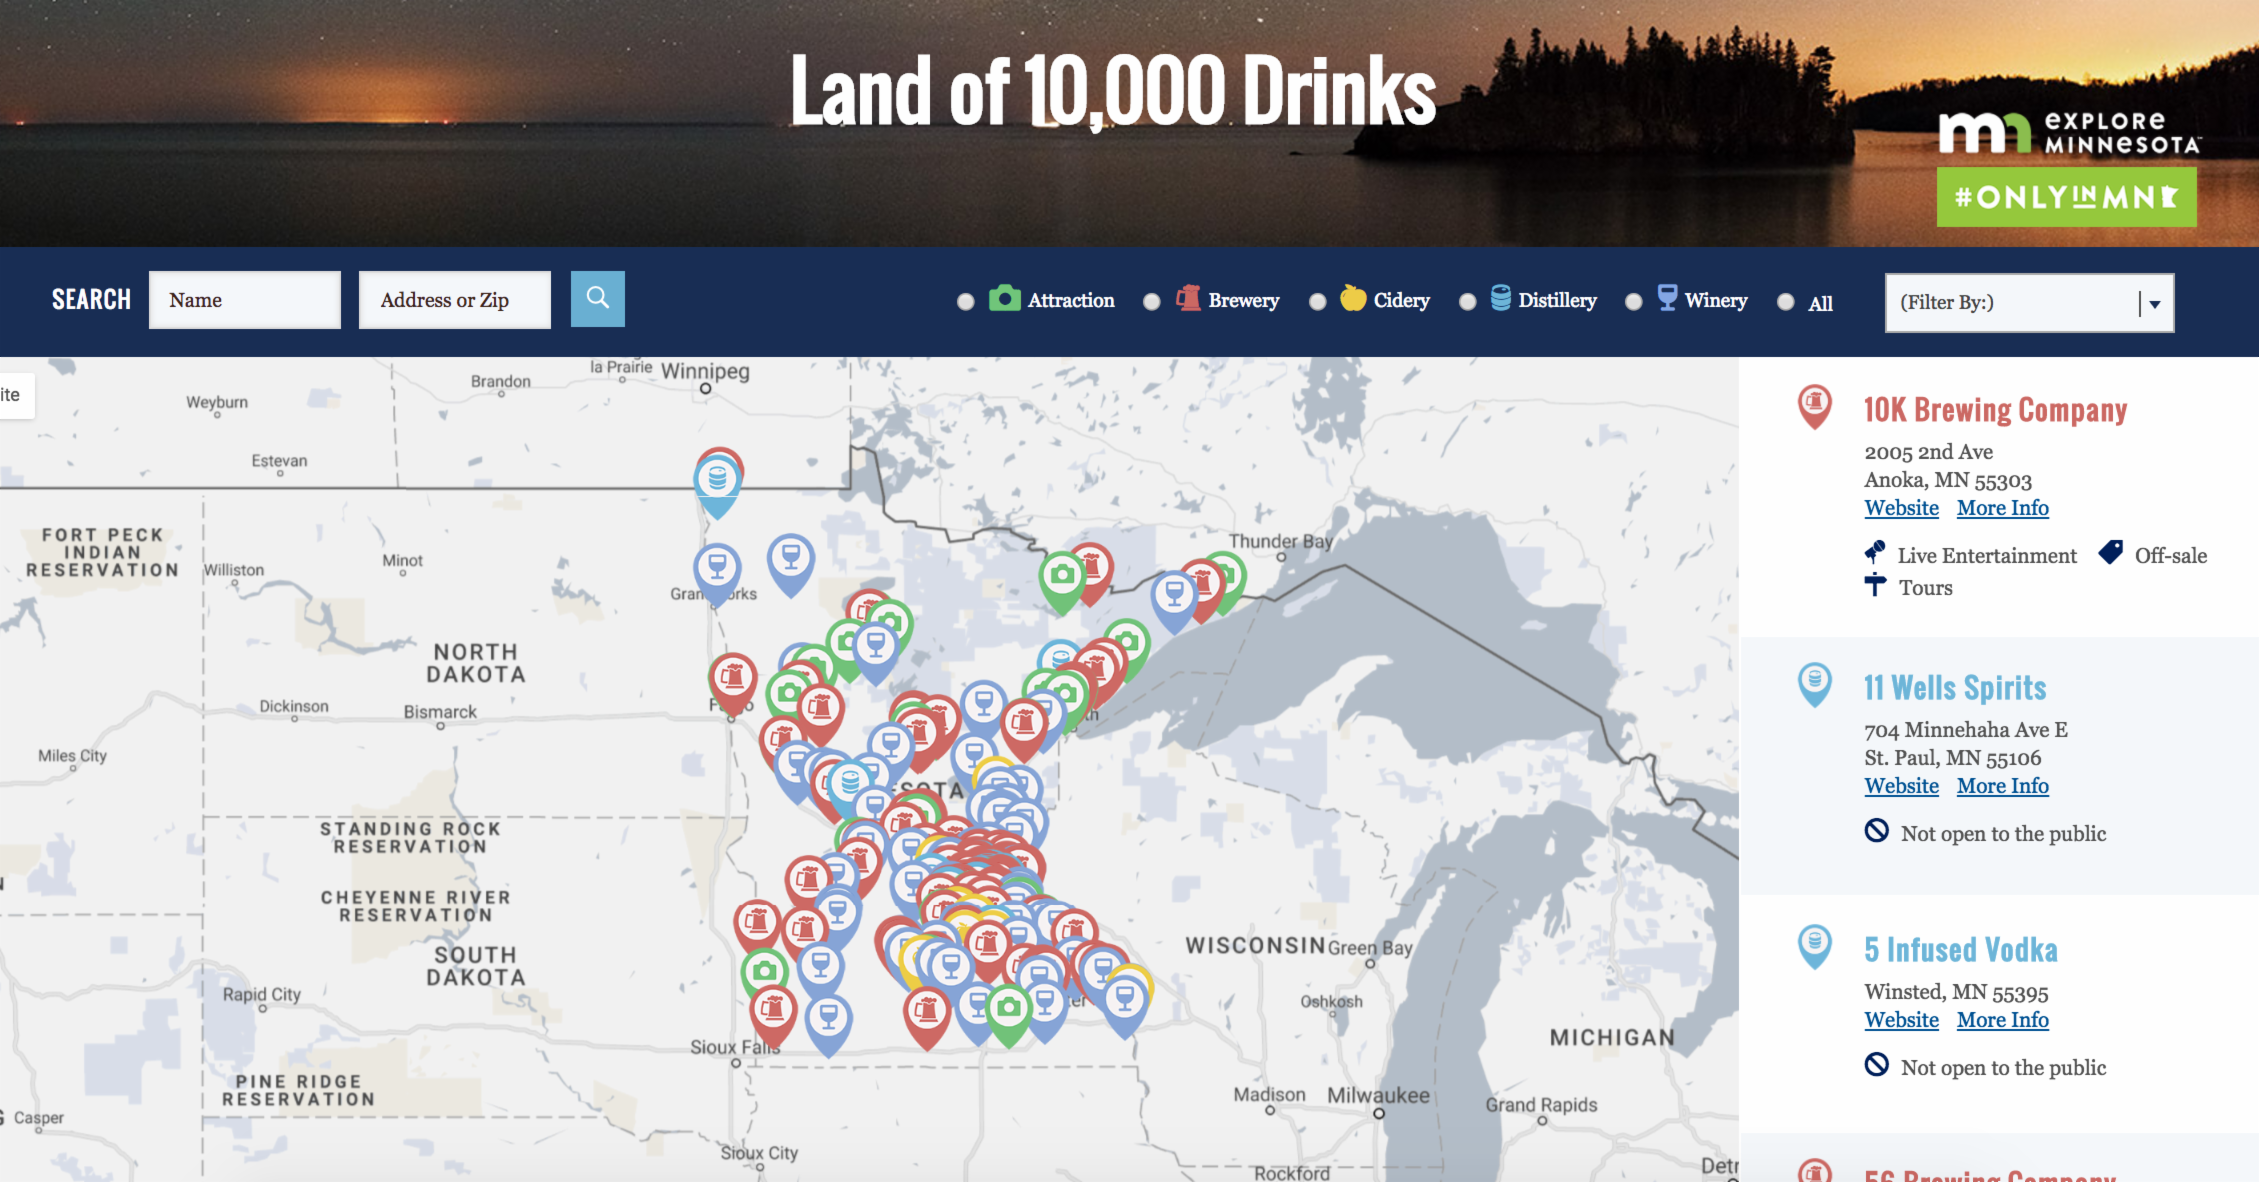 breweries in minnesota map The Growler Magazine Debuts Land Of 10 000 Drinks An breweries in minnesota map